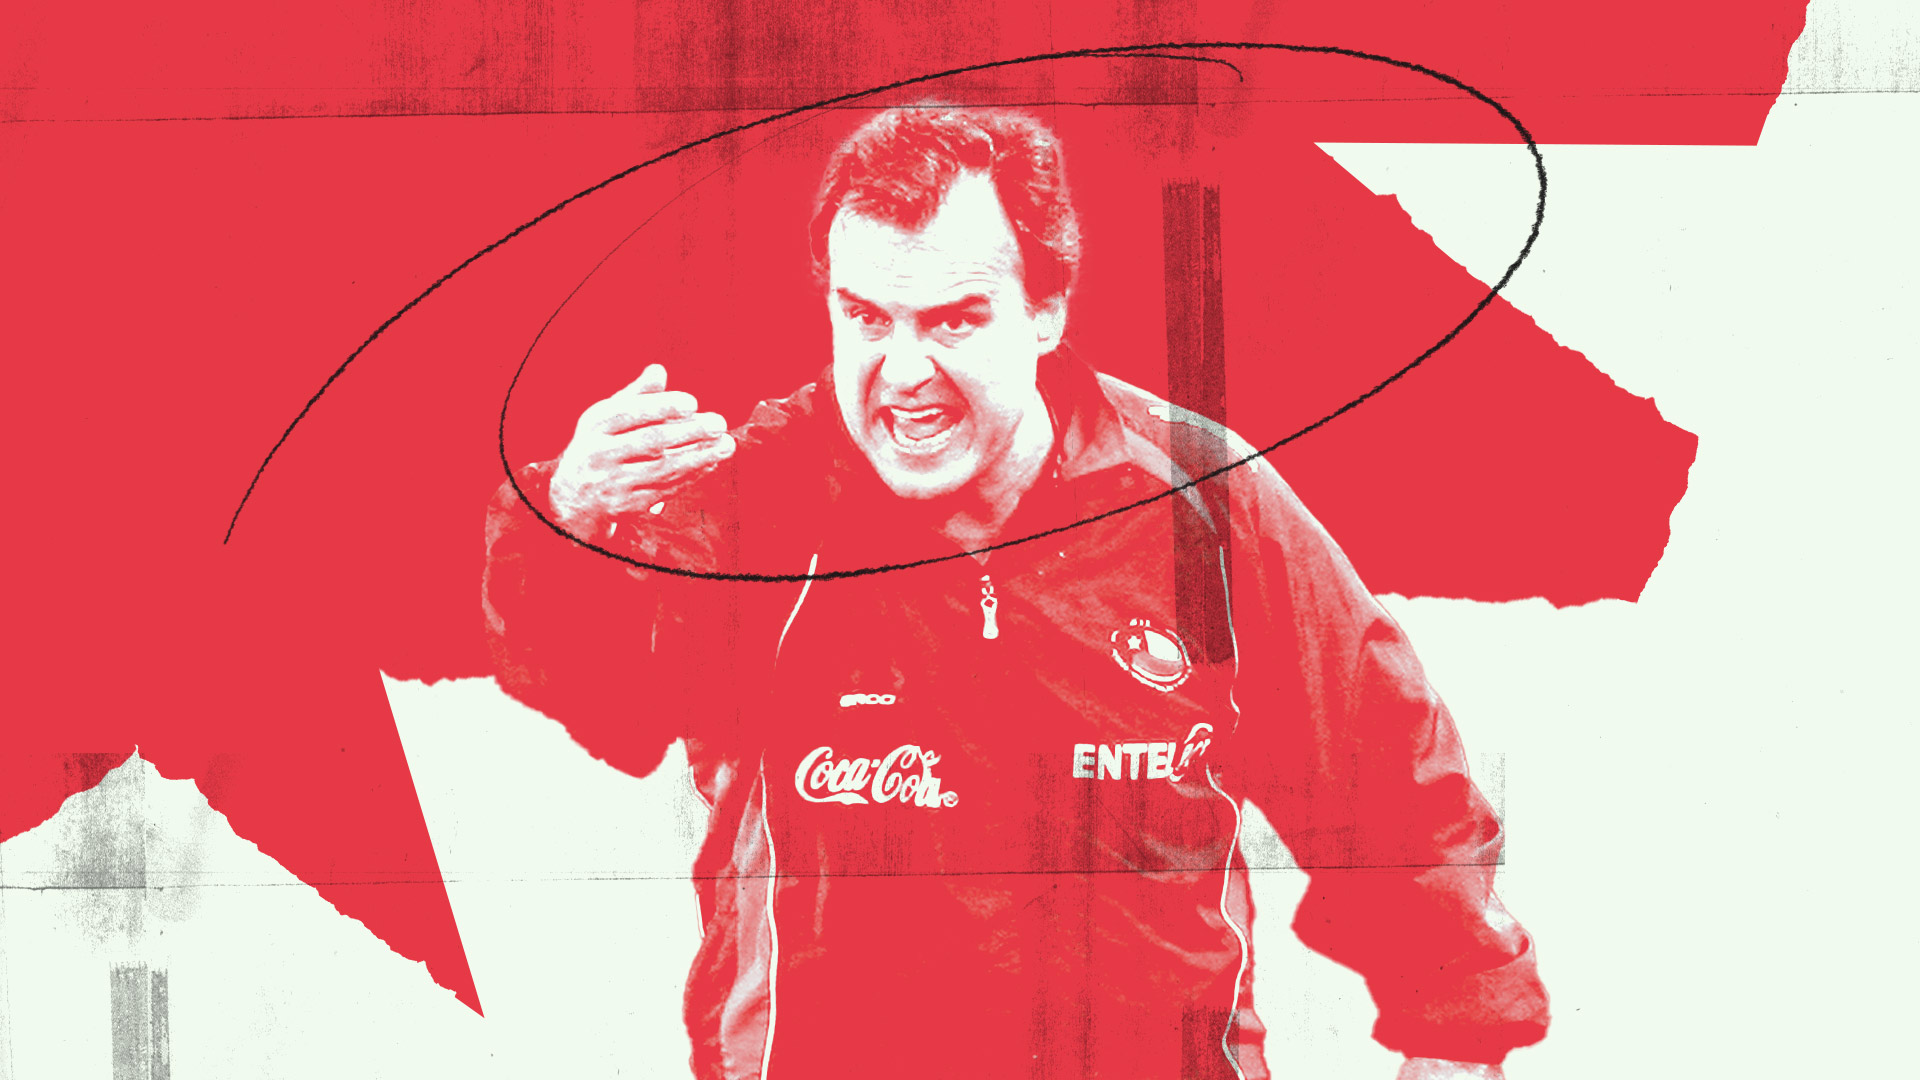 Bielsa as Chile coach, shouting at his players